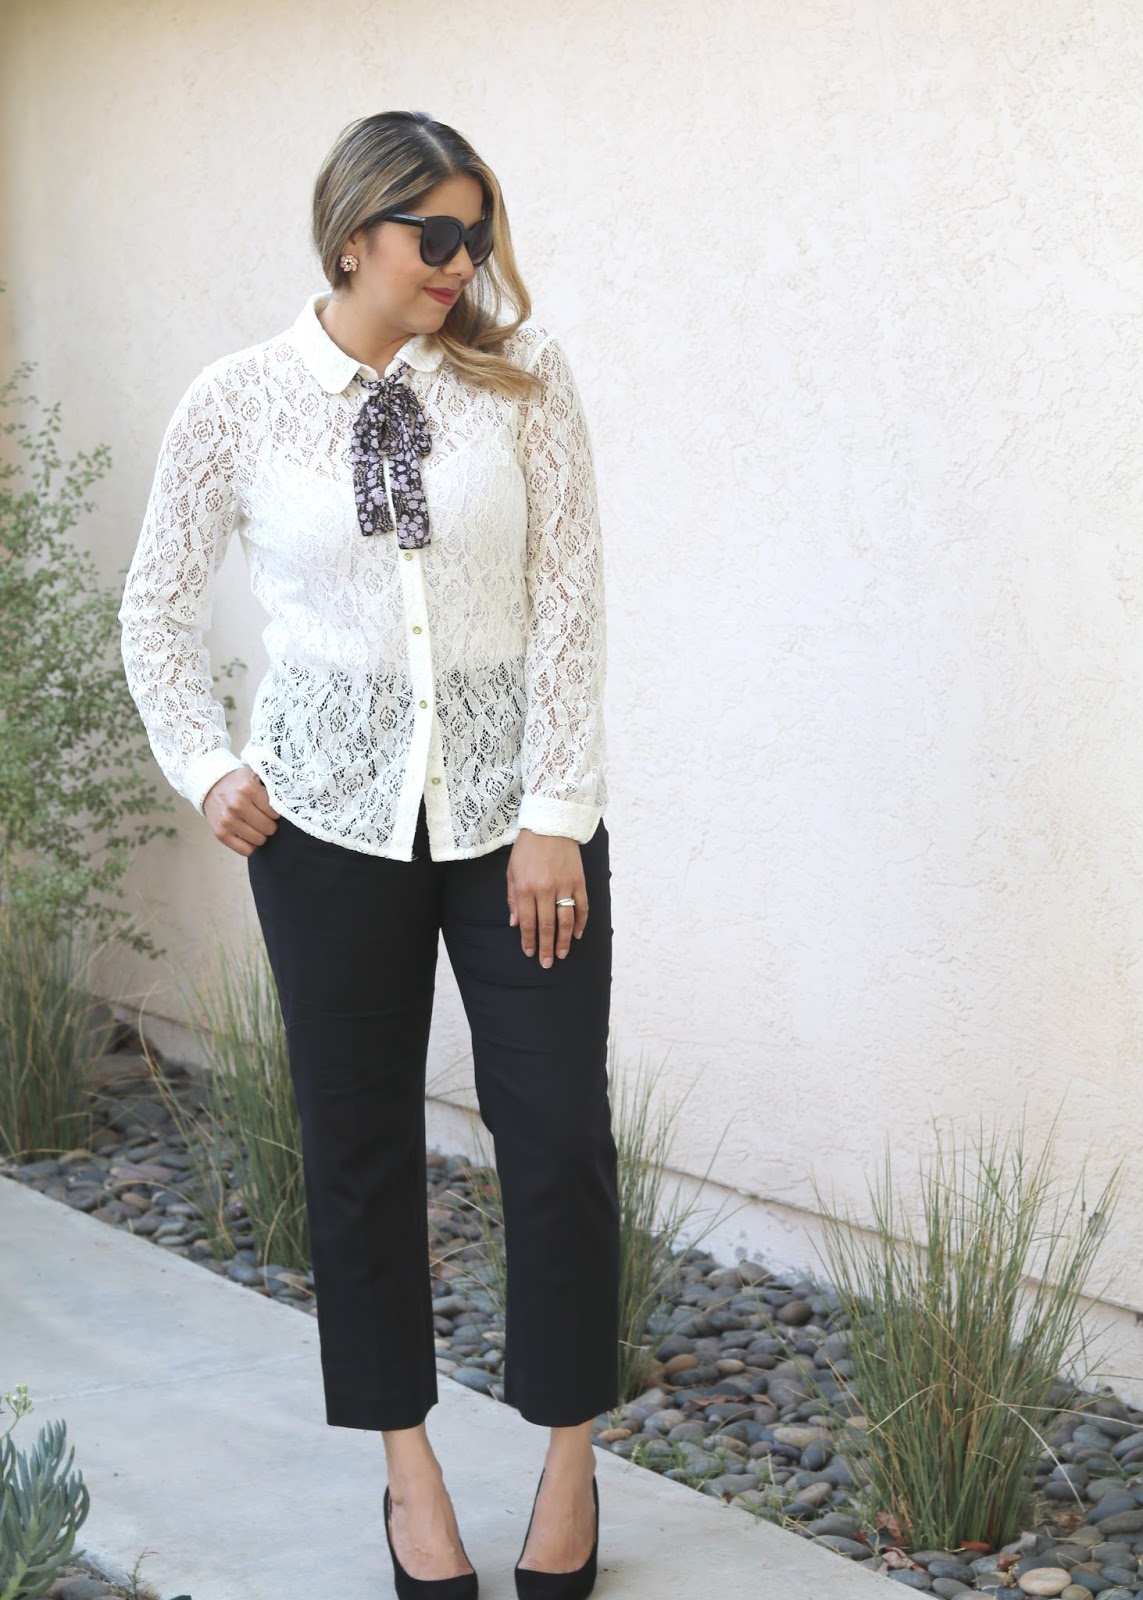 lc lauren conrad blouse, lauren conrad for kohls collection, san diego fashion blogger, socal fashion blogger